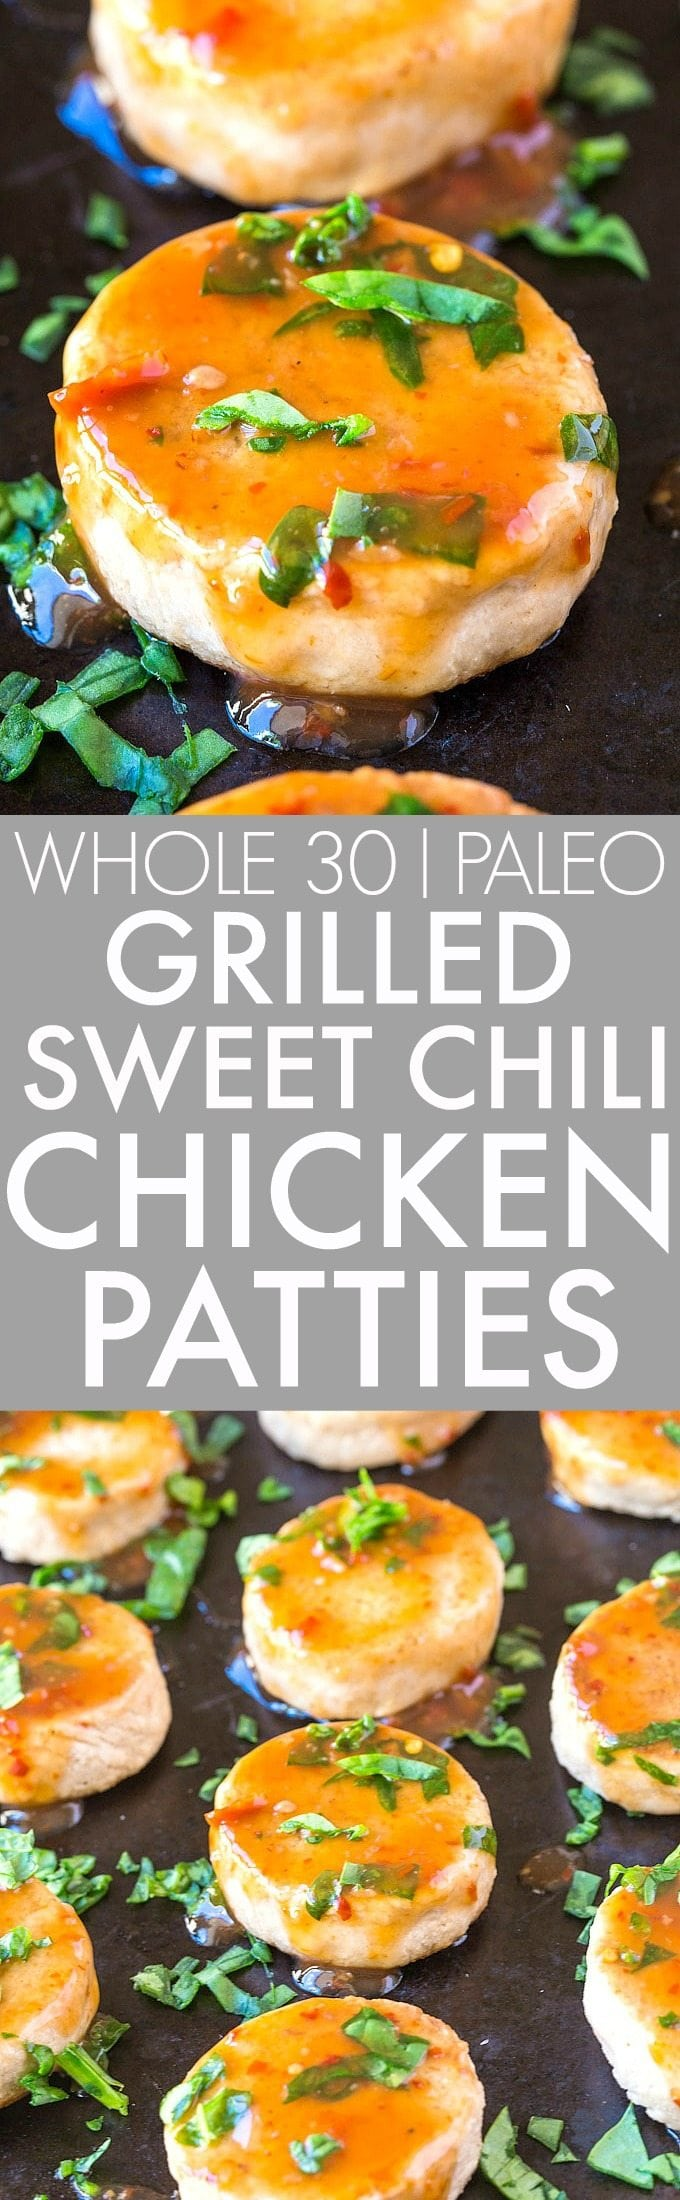 Easy Grilled Sweet Chili Chicken Burgers and Patties (Whole 30, Paleo, GF)- Whole30 friendly sweet chili chicken burgers/sliders/patties which are SO easy and pan fried- Healthy, delicious and freezer friendly! {whole 30, paleo, gluten free}- thebigmansworld.com